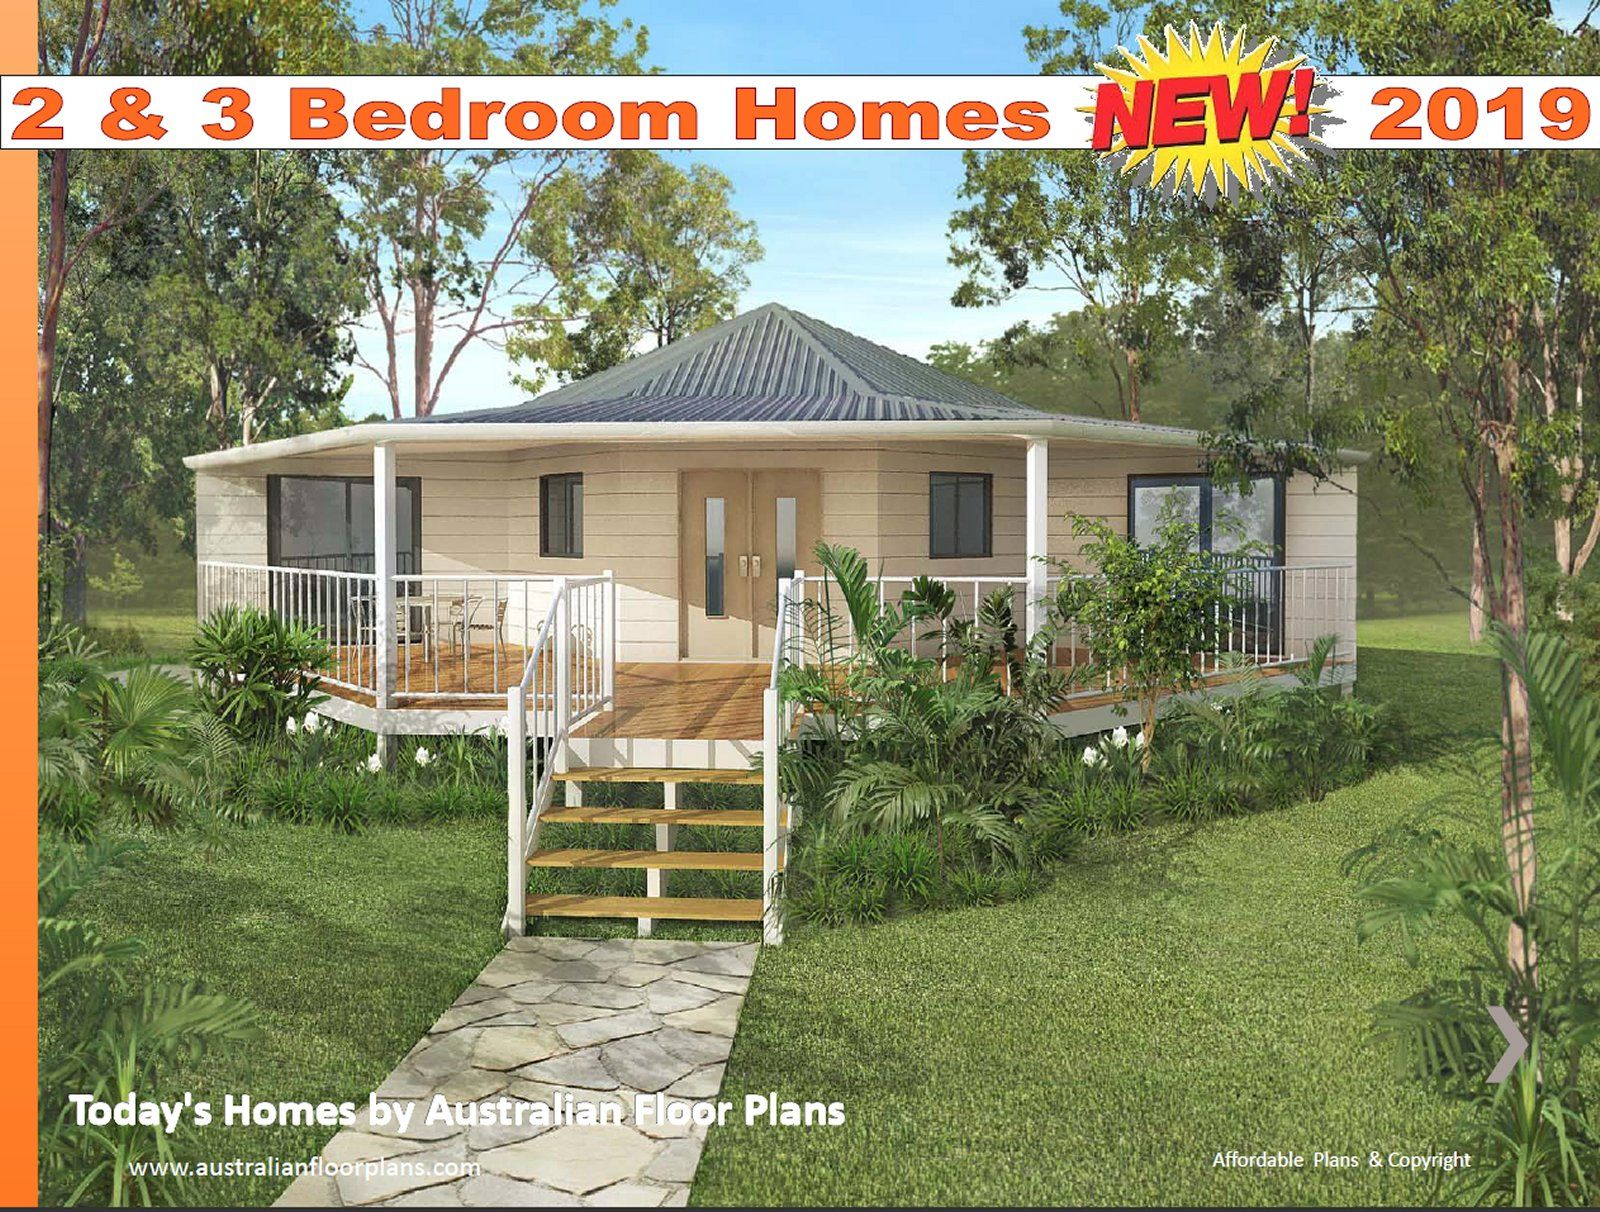 2 and 3 Bedroom -house Plan Design Book | Small and tiny ...  Bedroom House Electrical Plan on 1200 sf house plans, 3-bedroom cabin plans, 14 bedroom house plans, cabin house plans, floor plans, tiny house plans, unique house plans, shop house plans, bungalow house plans, 5 bedroom ranch house plans, 3 storey house plans, sims 3 house plans, pet friendly house plans, 6 bedroom house plans, modern ranch house plans, great room house plans, design tech house plans, i shaped house plans, duplex house plans, simple house plans,